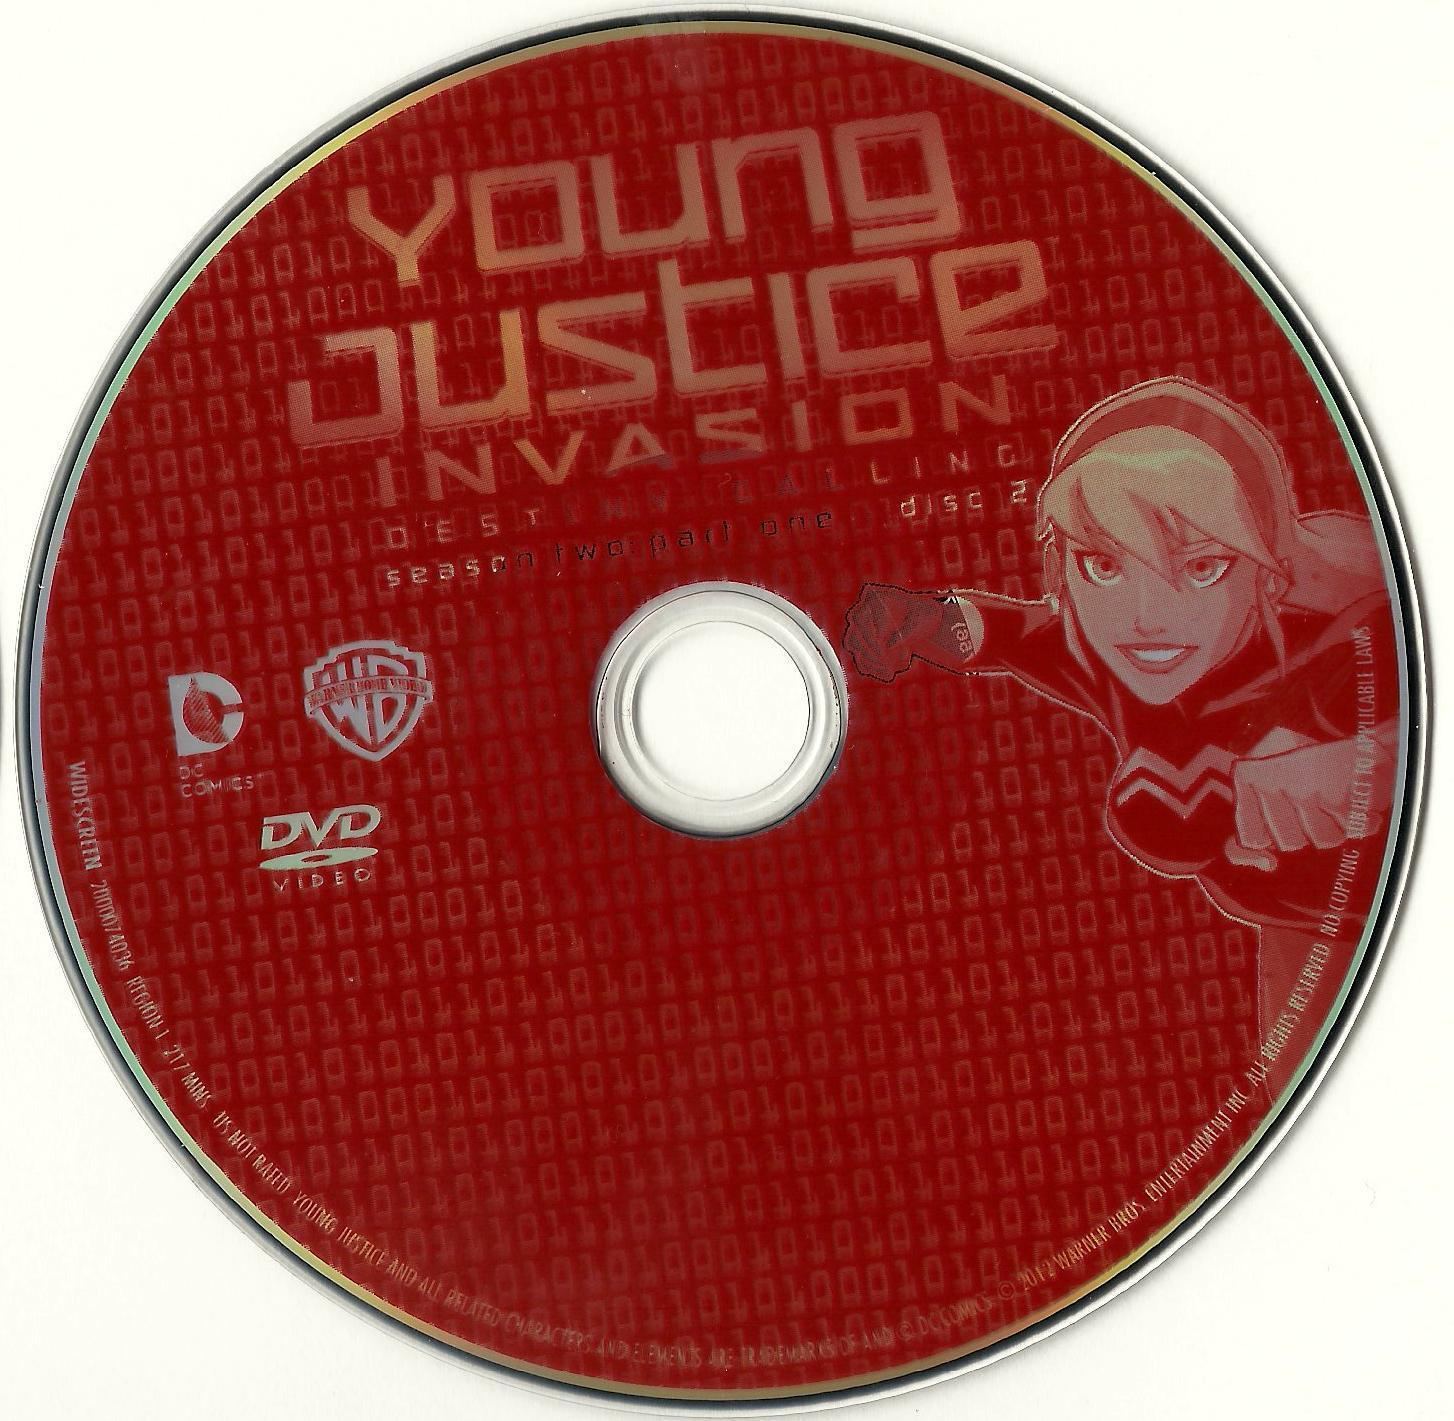 cd dvd fucking youngest teen